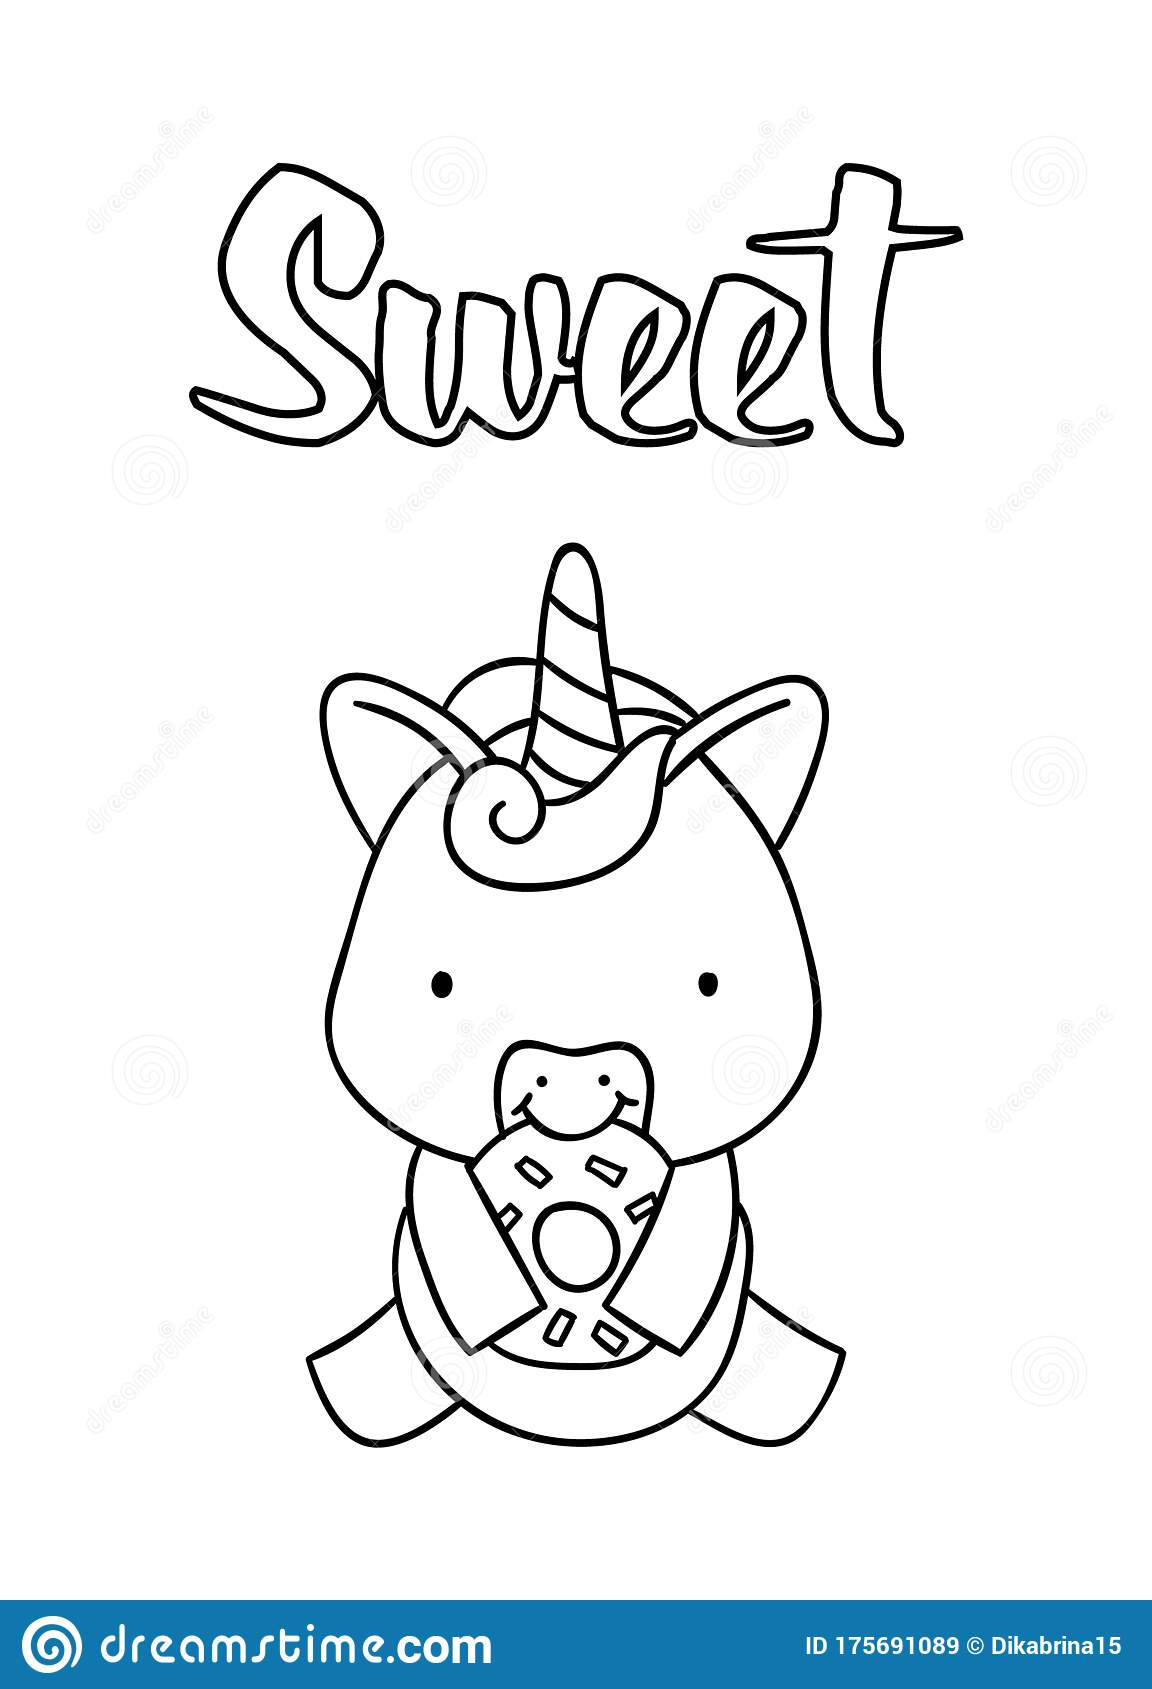 Coloring Pages Black And White Cute Hand Drawn Unicorn With Donut Doodles Lettering Sweet Stock Vector Illustration Of Isolated Outline 175691089